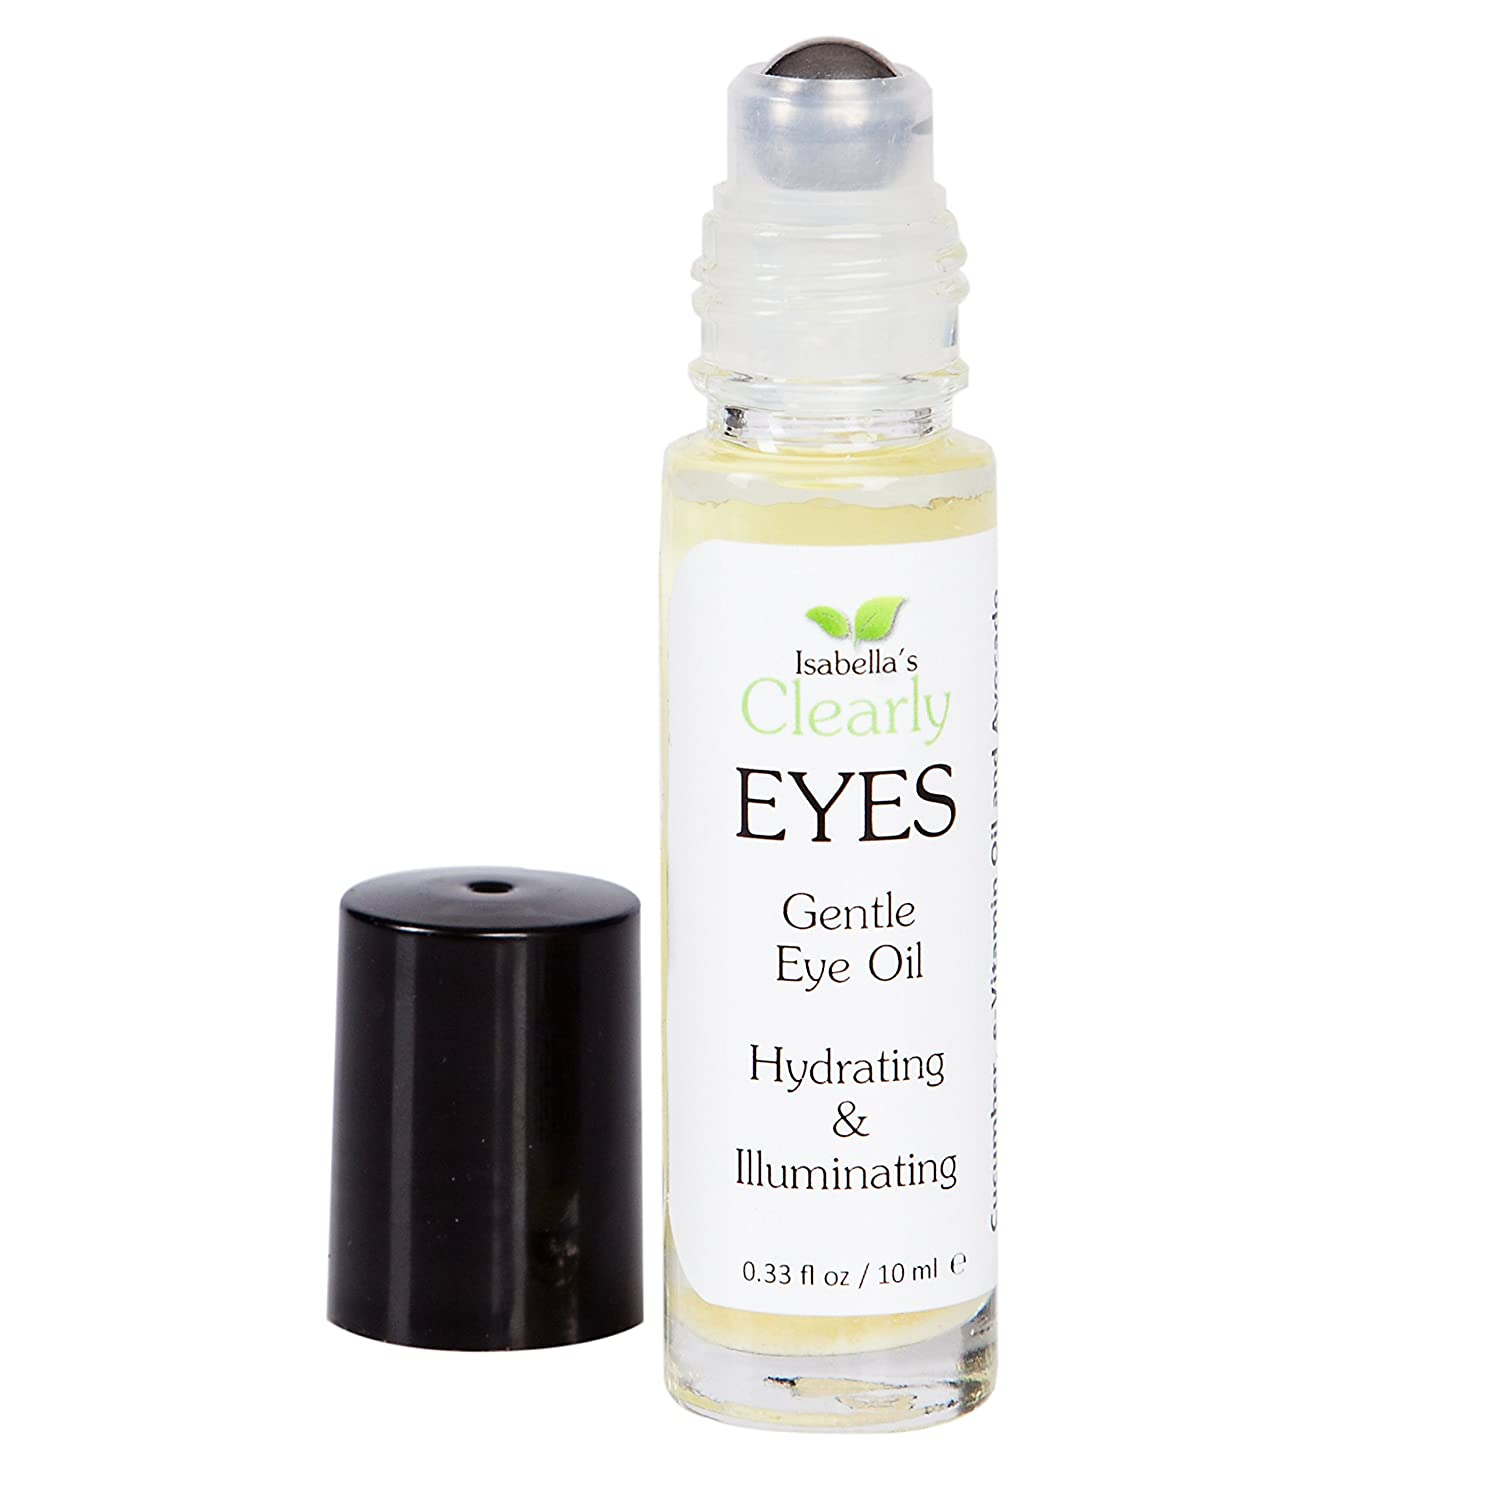 Isabella's Clearly EYES. Best High Density Eye Serum to Hydrate, Illuminate, Firm Eye Area. Anti Aging Oil reduces fine lines, wrinkles, dark circles, puffiness. Natural Therapeutic Avocado, Coconut, Cucumber, and Vitamin E. 0.3 Oz Isabella's Clearly 6